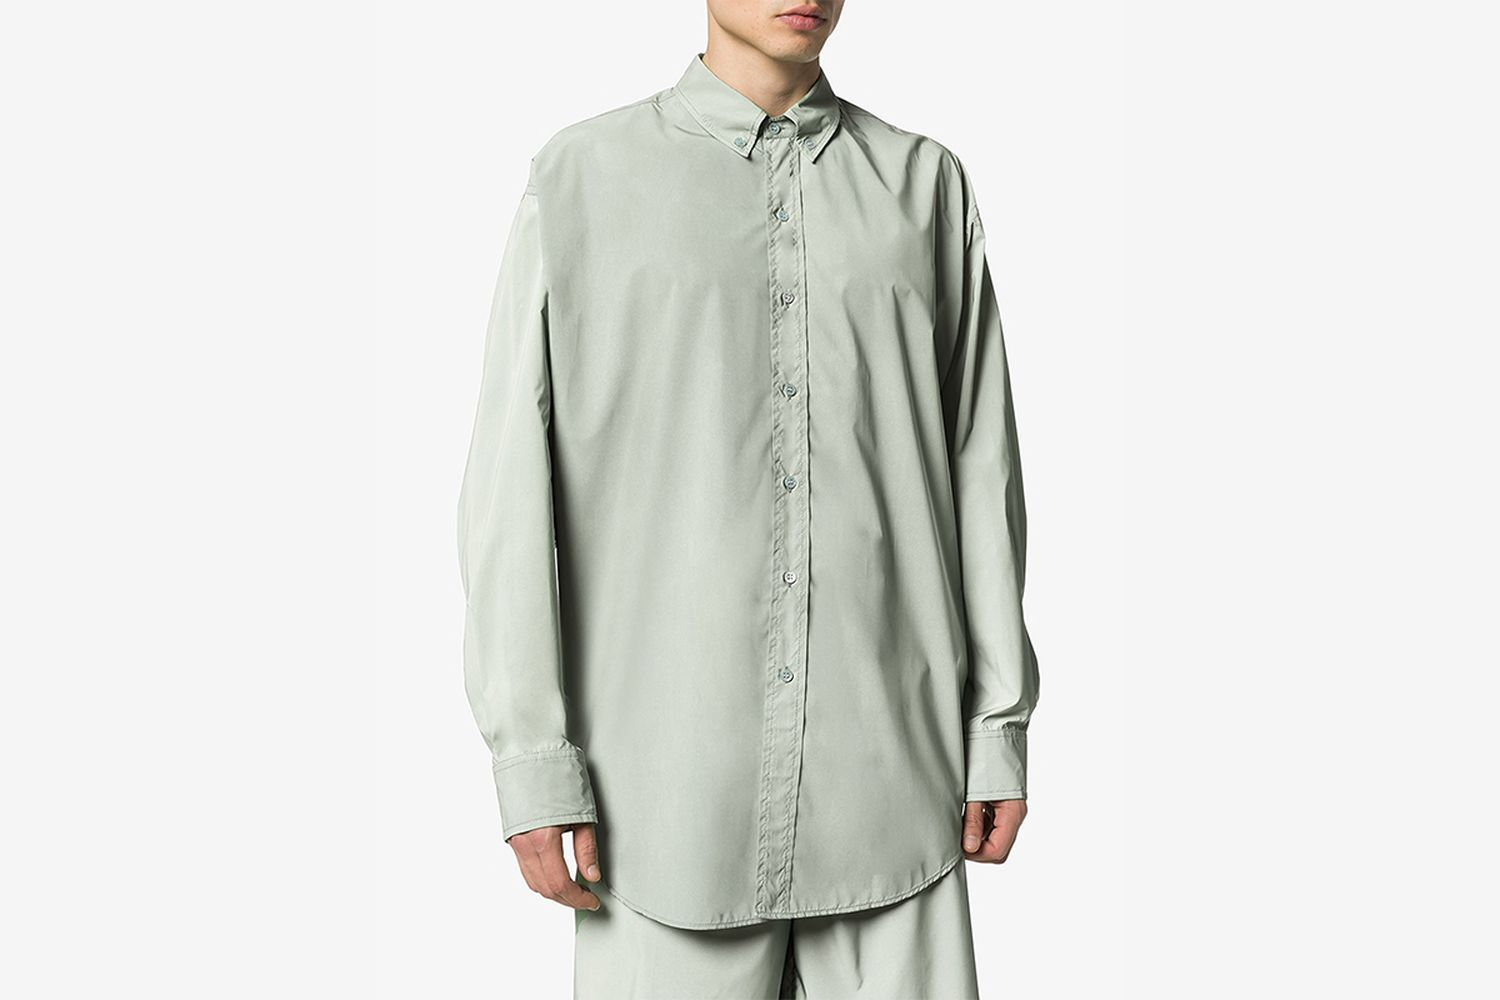 Anderson Reflective Oversized Shirt